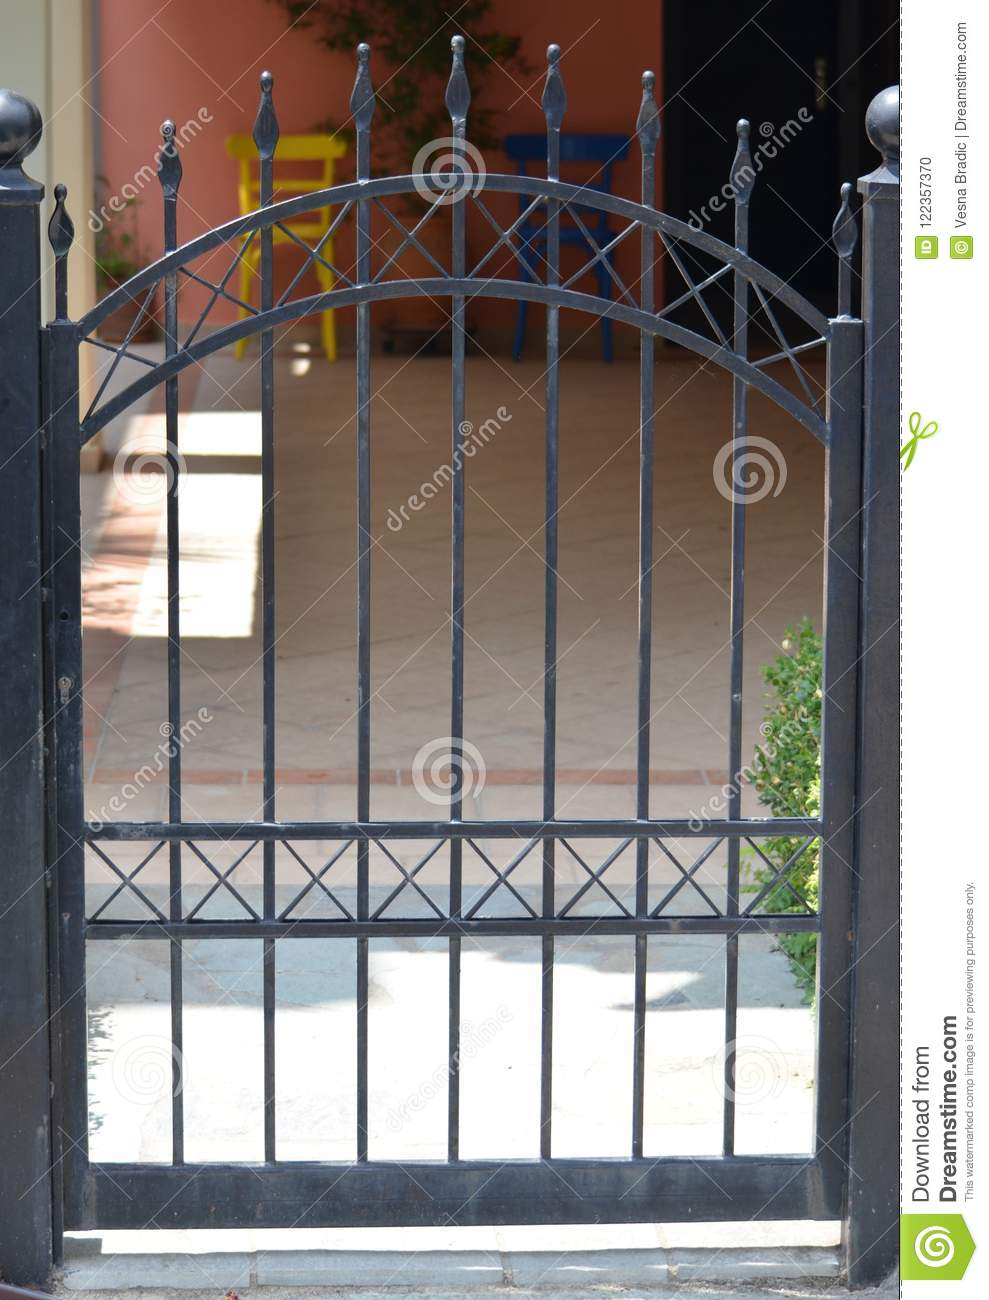 Modern Metal Gate With Modern Metal Gate Of Private House Metal Gate Of Private House Stock Photo Image Fence